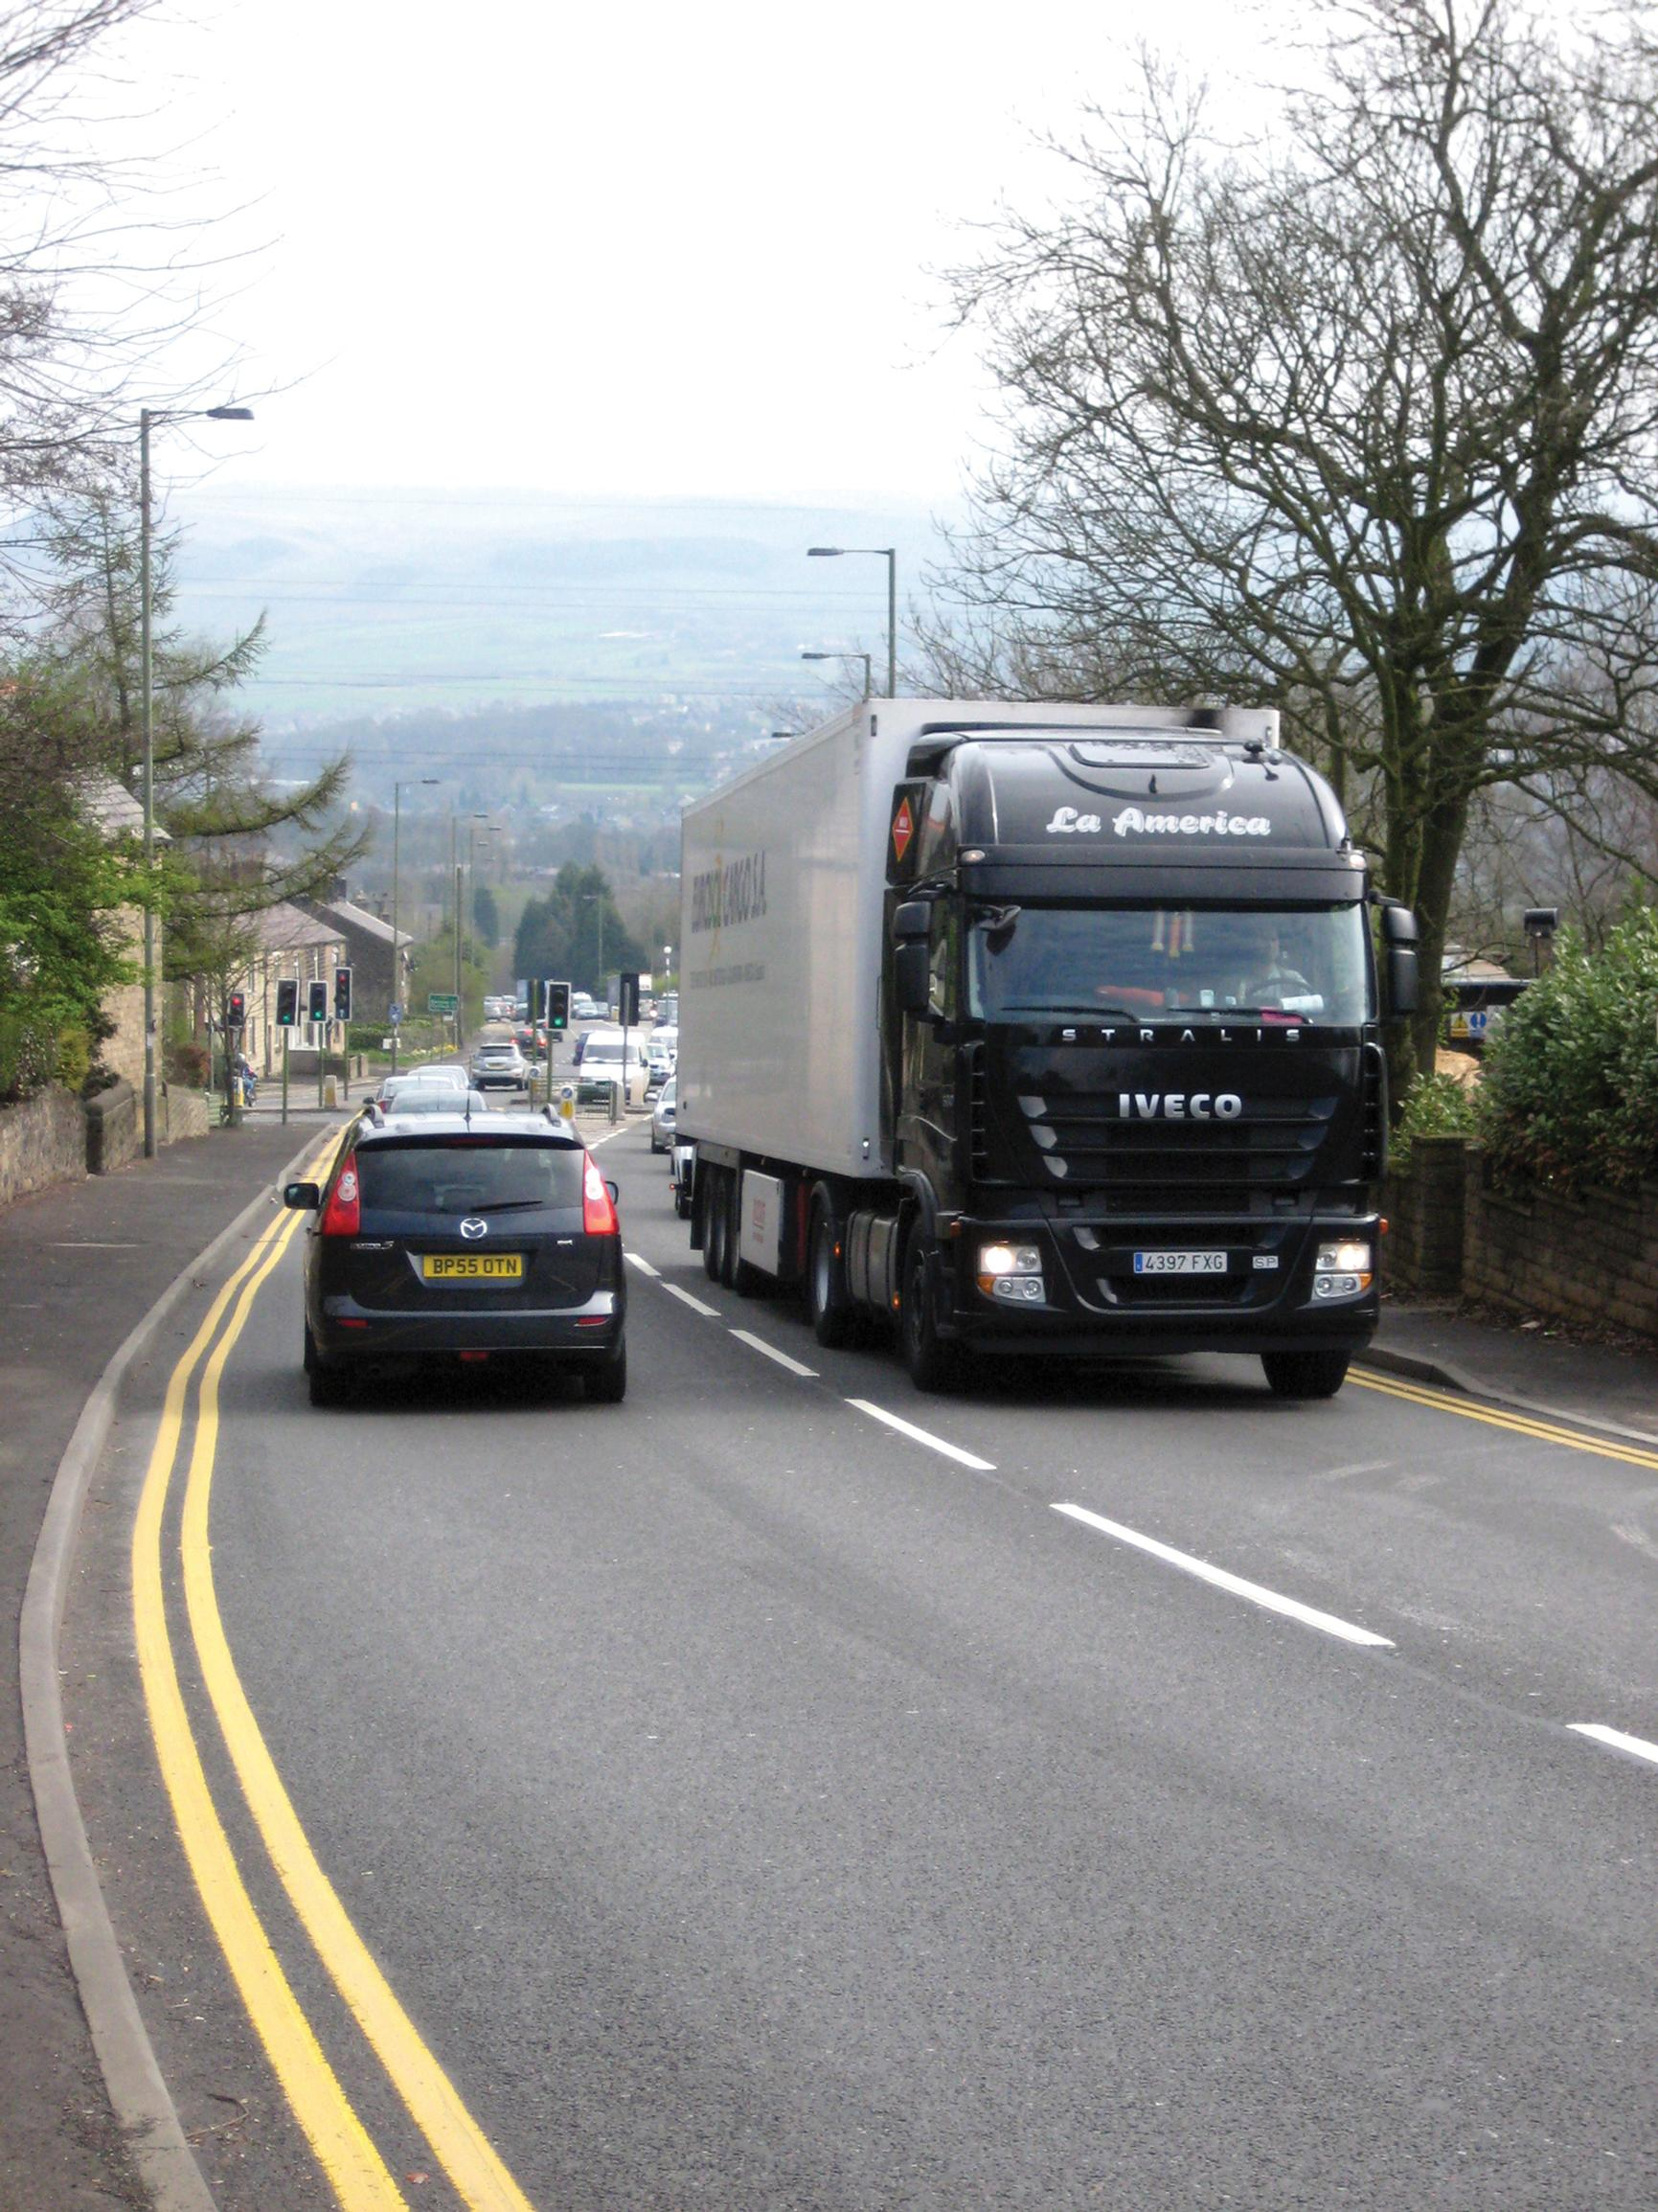 Lorry platoons are one area of interest